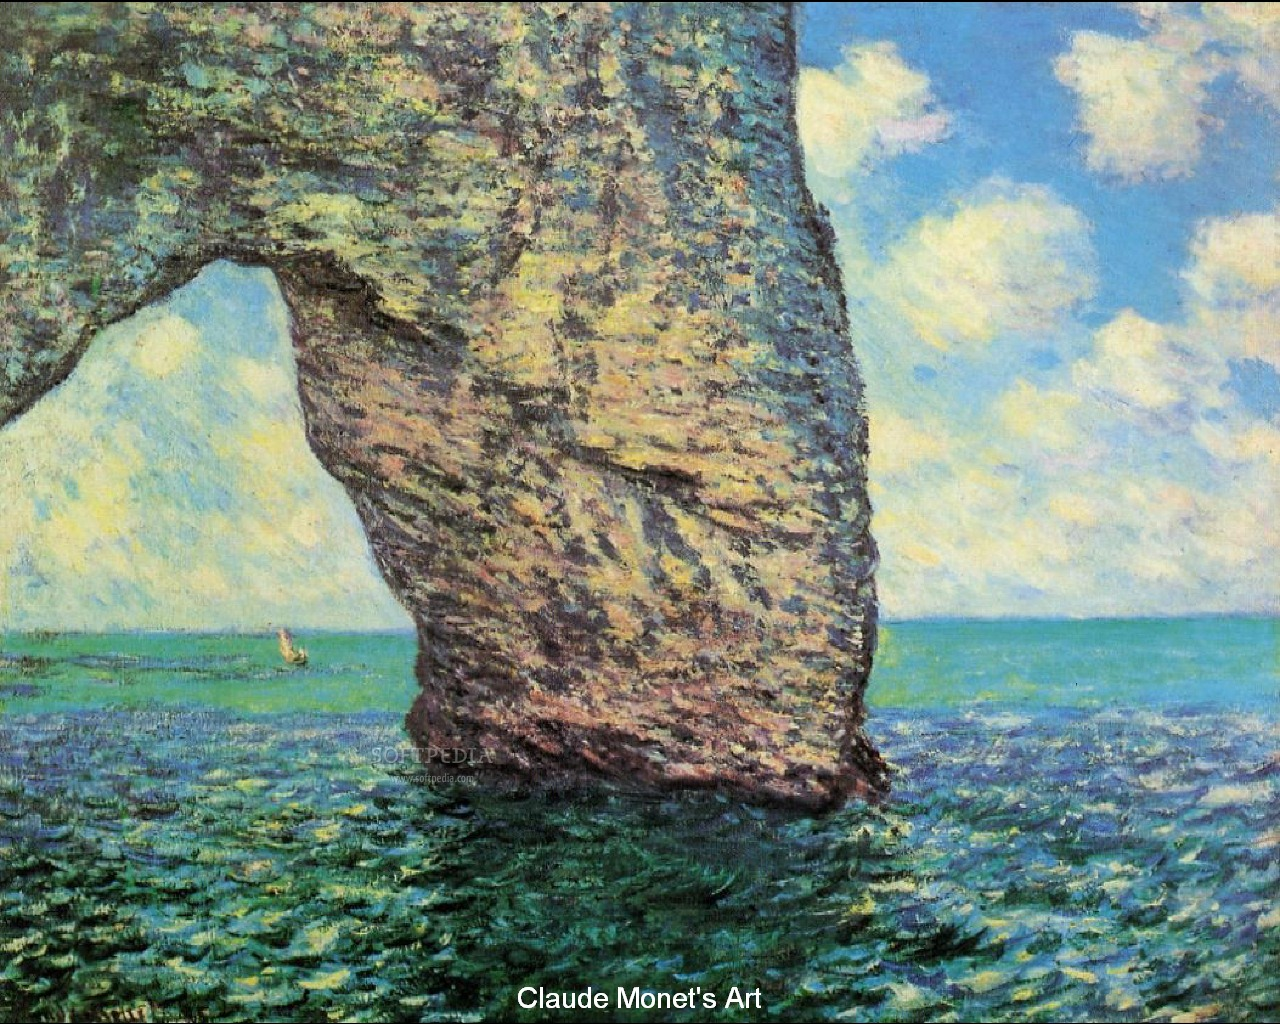 Claude Monet Painting Screensaver - This is one of the numerous paintings of CLaude Monet that